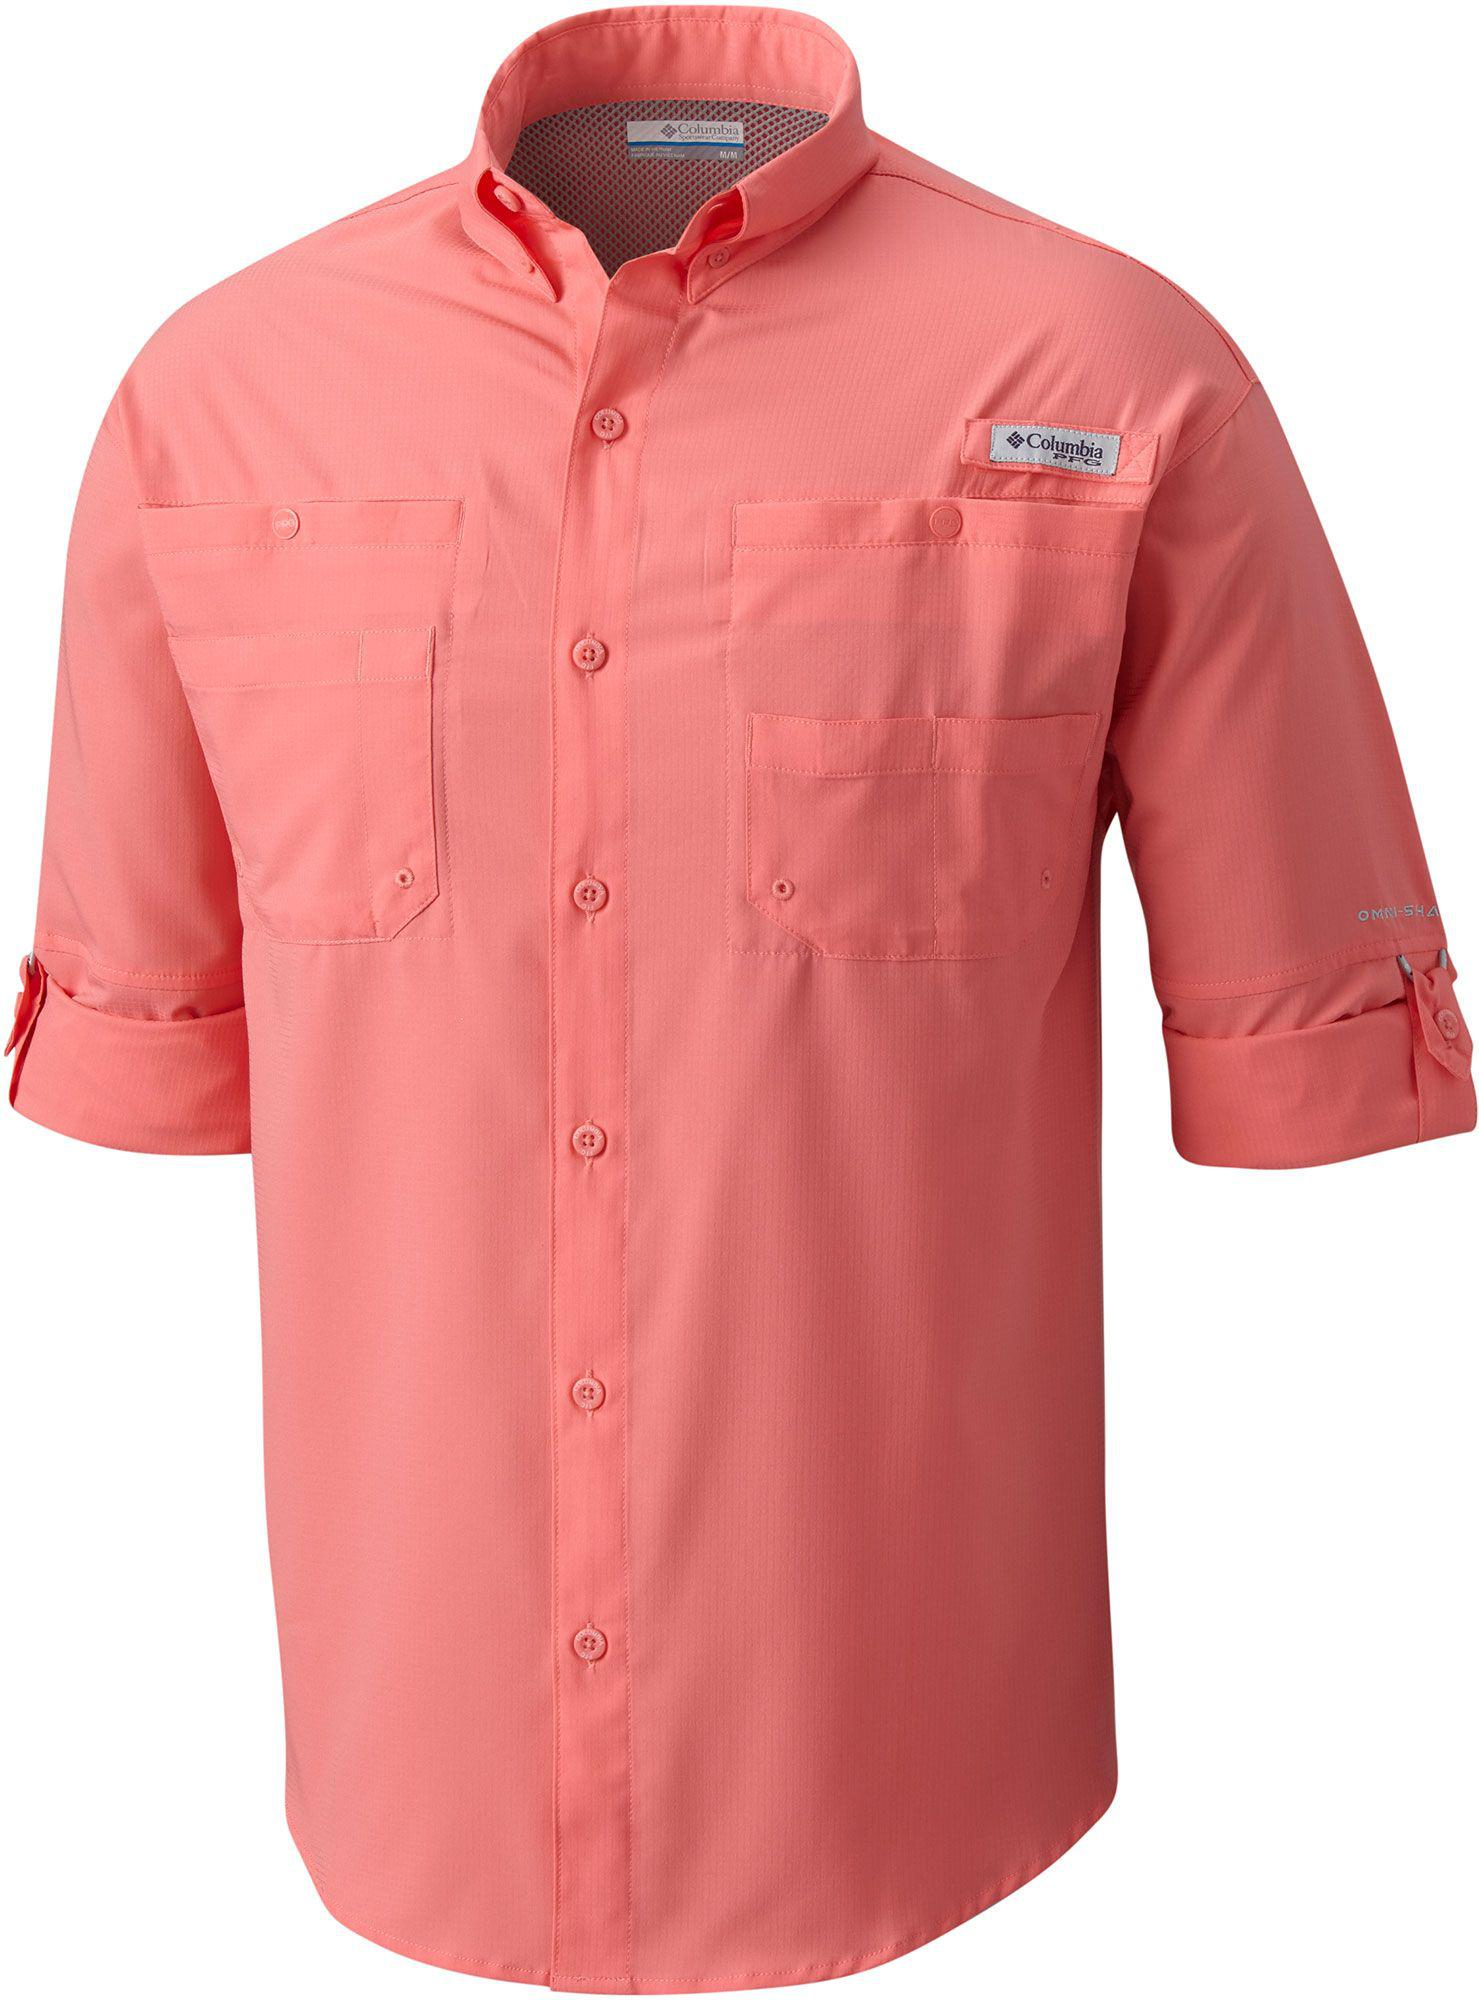 74c150b0e1a Columbia Pfg Tamiami Ii Long Sleeve Shirt in Pink for Men - Lyst